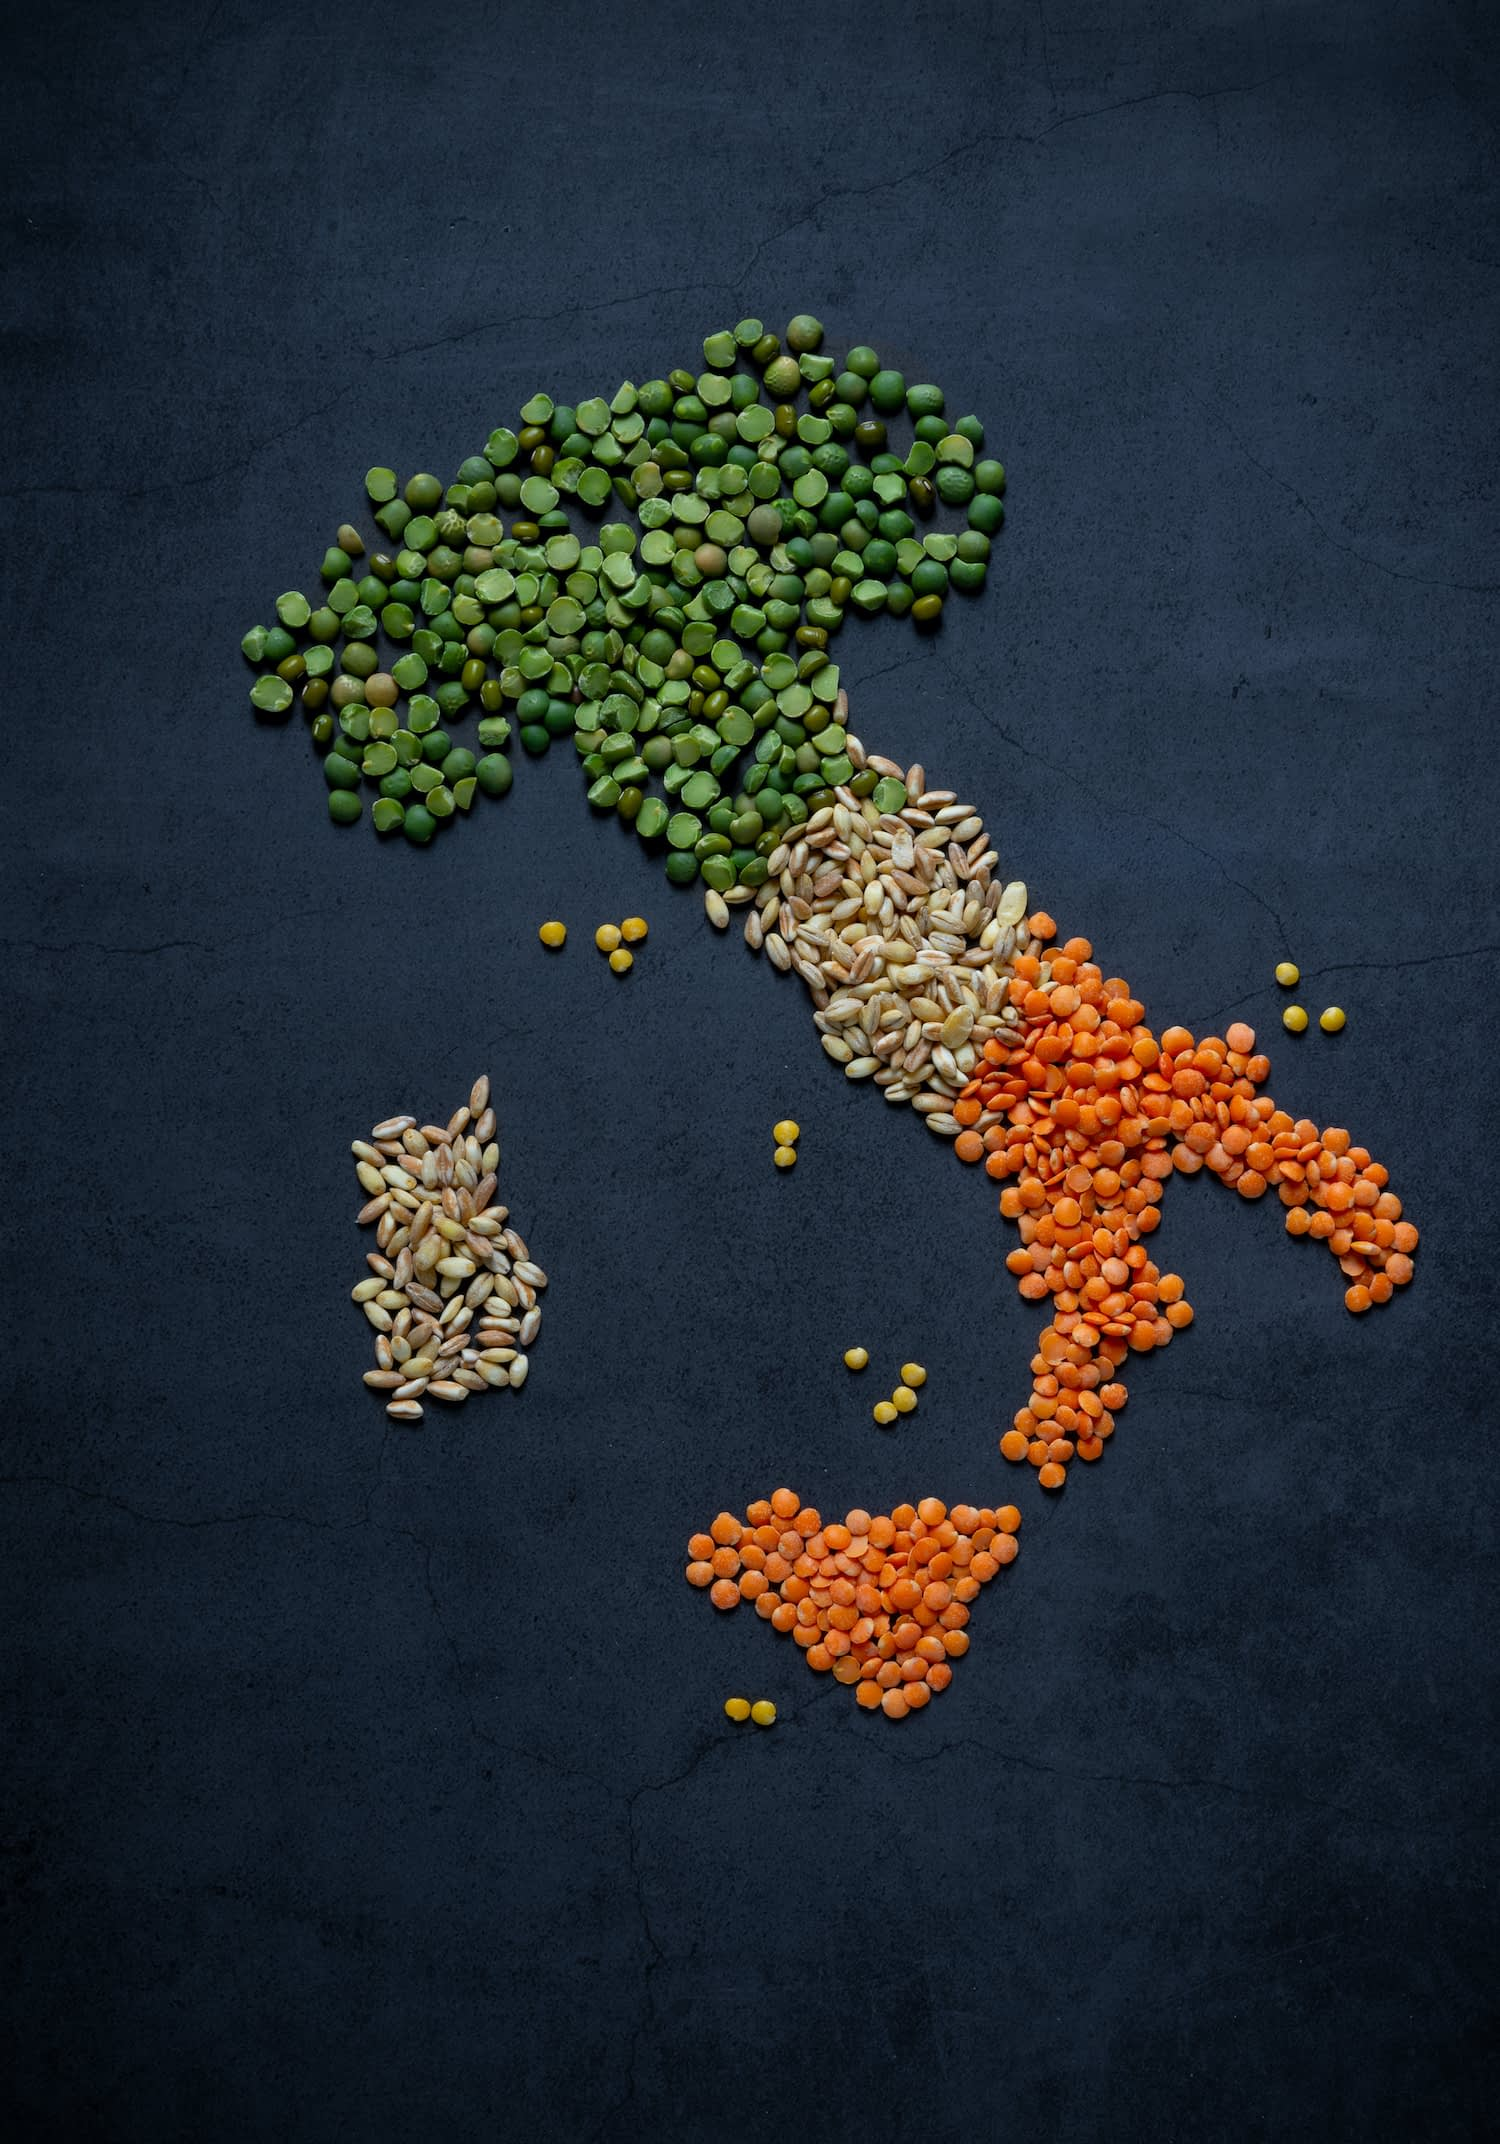 Image of dry goods, lentils, peas, arranged in the shape of Italy to show history of global trade.